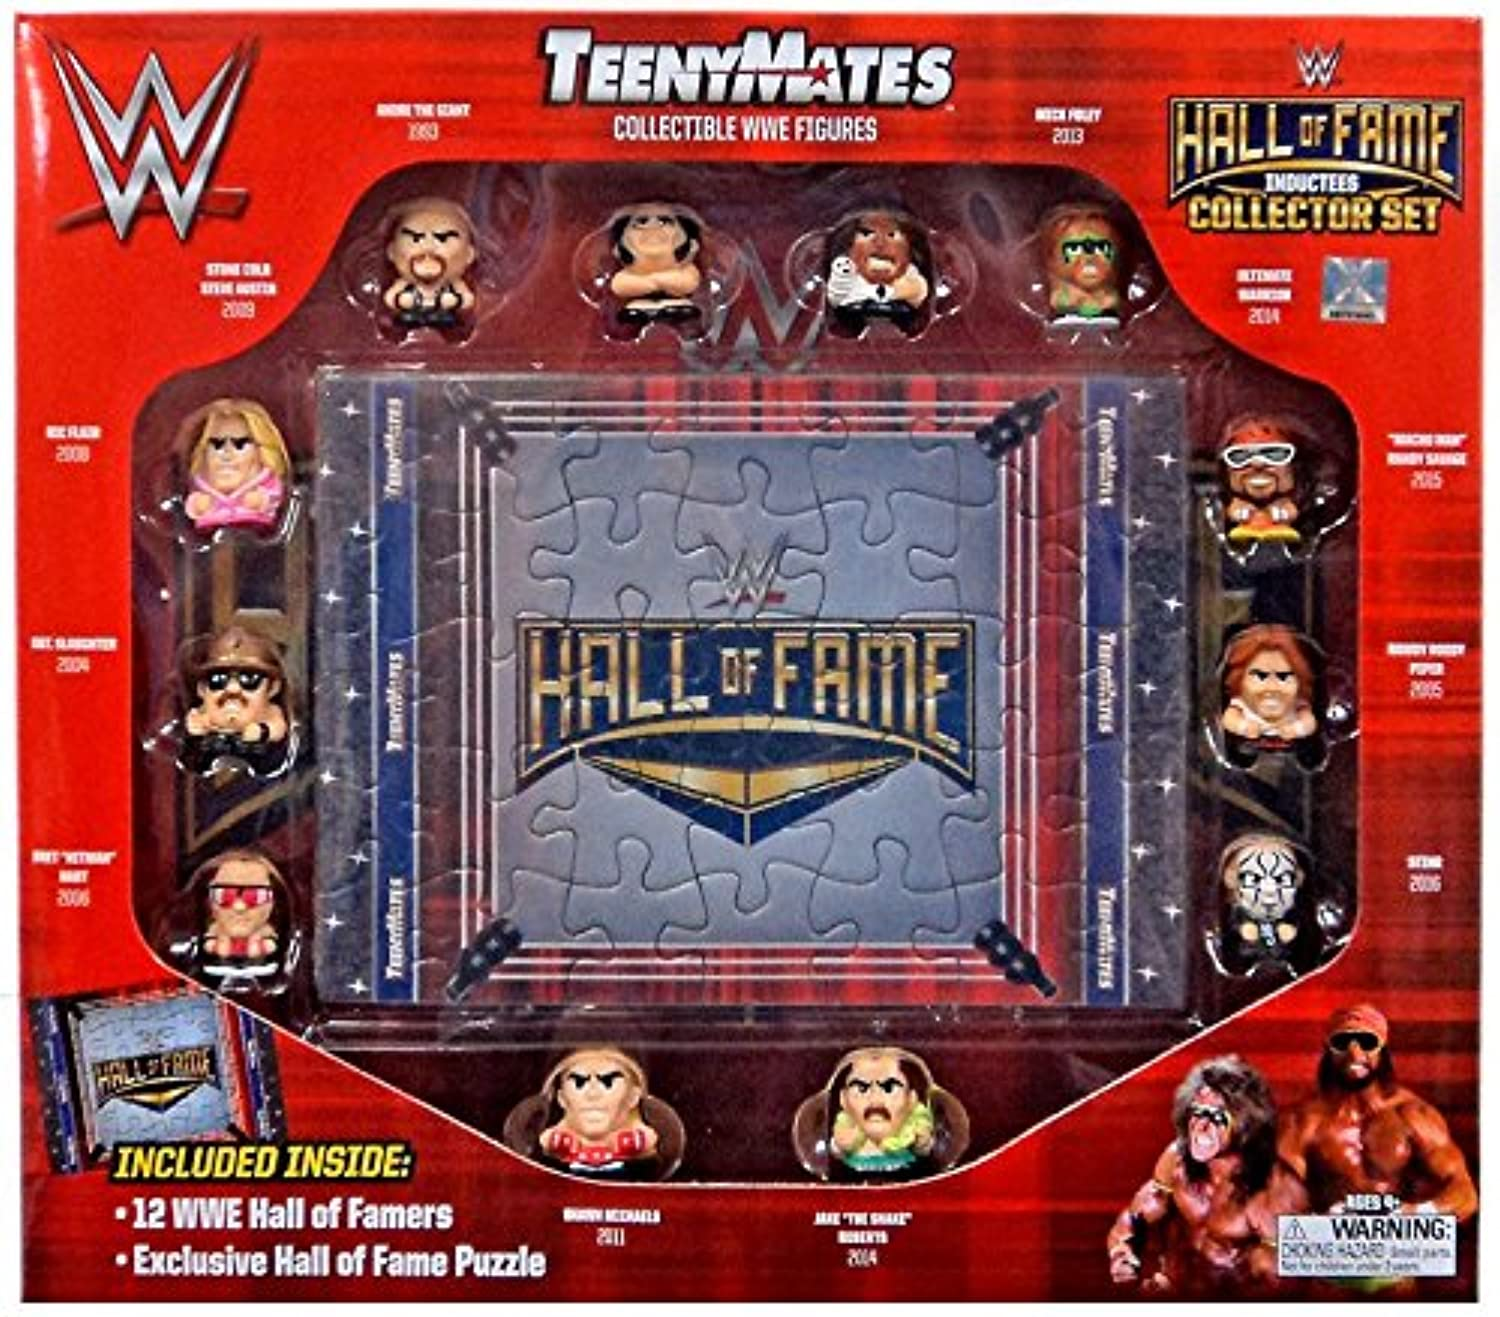 WWE Teeny Mates Hall Of Fame Collector Set 12 Famers + Puzzle Exclusive